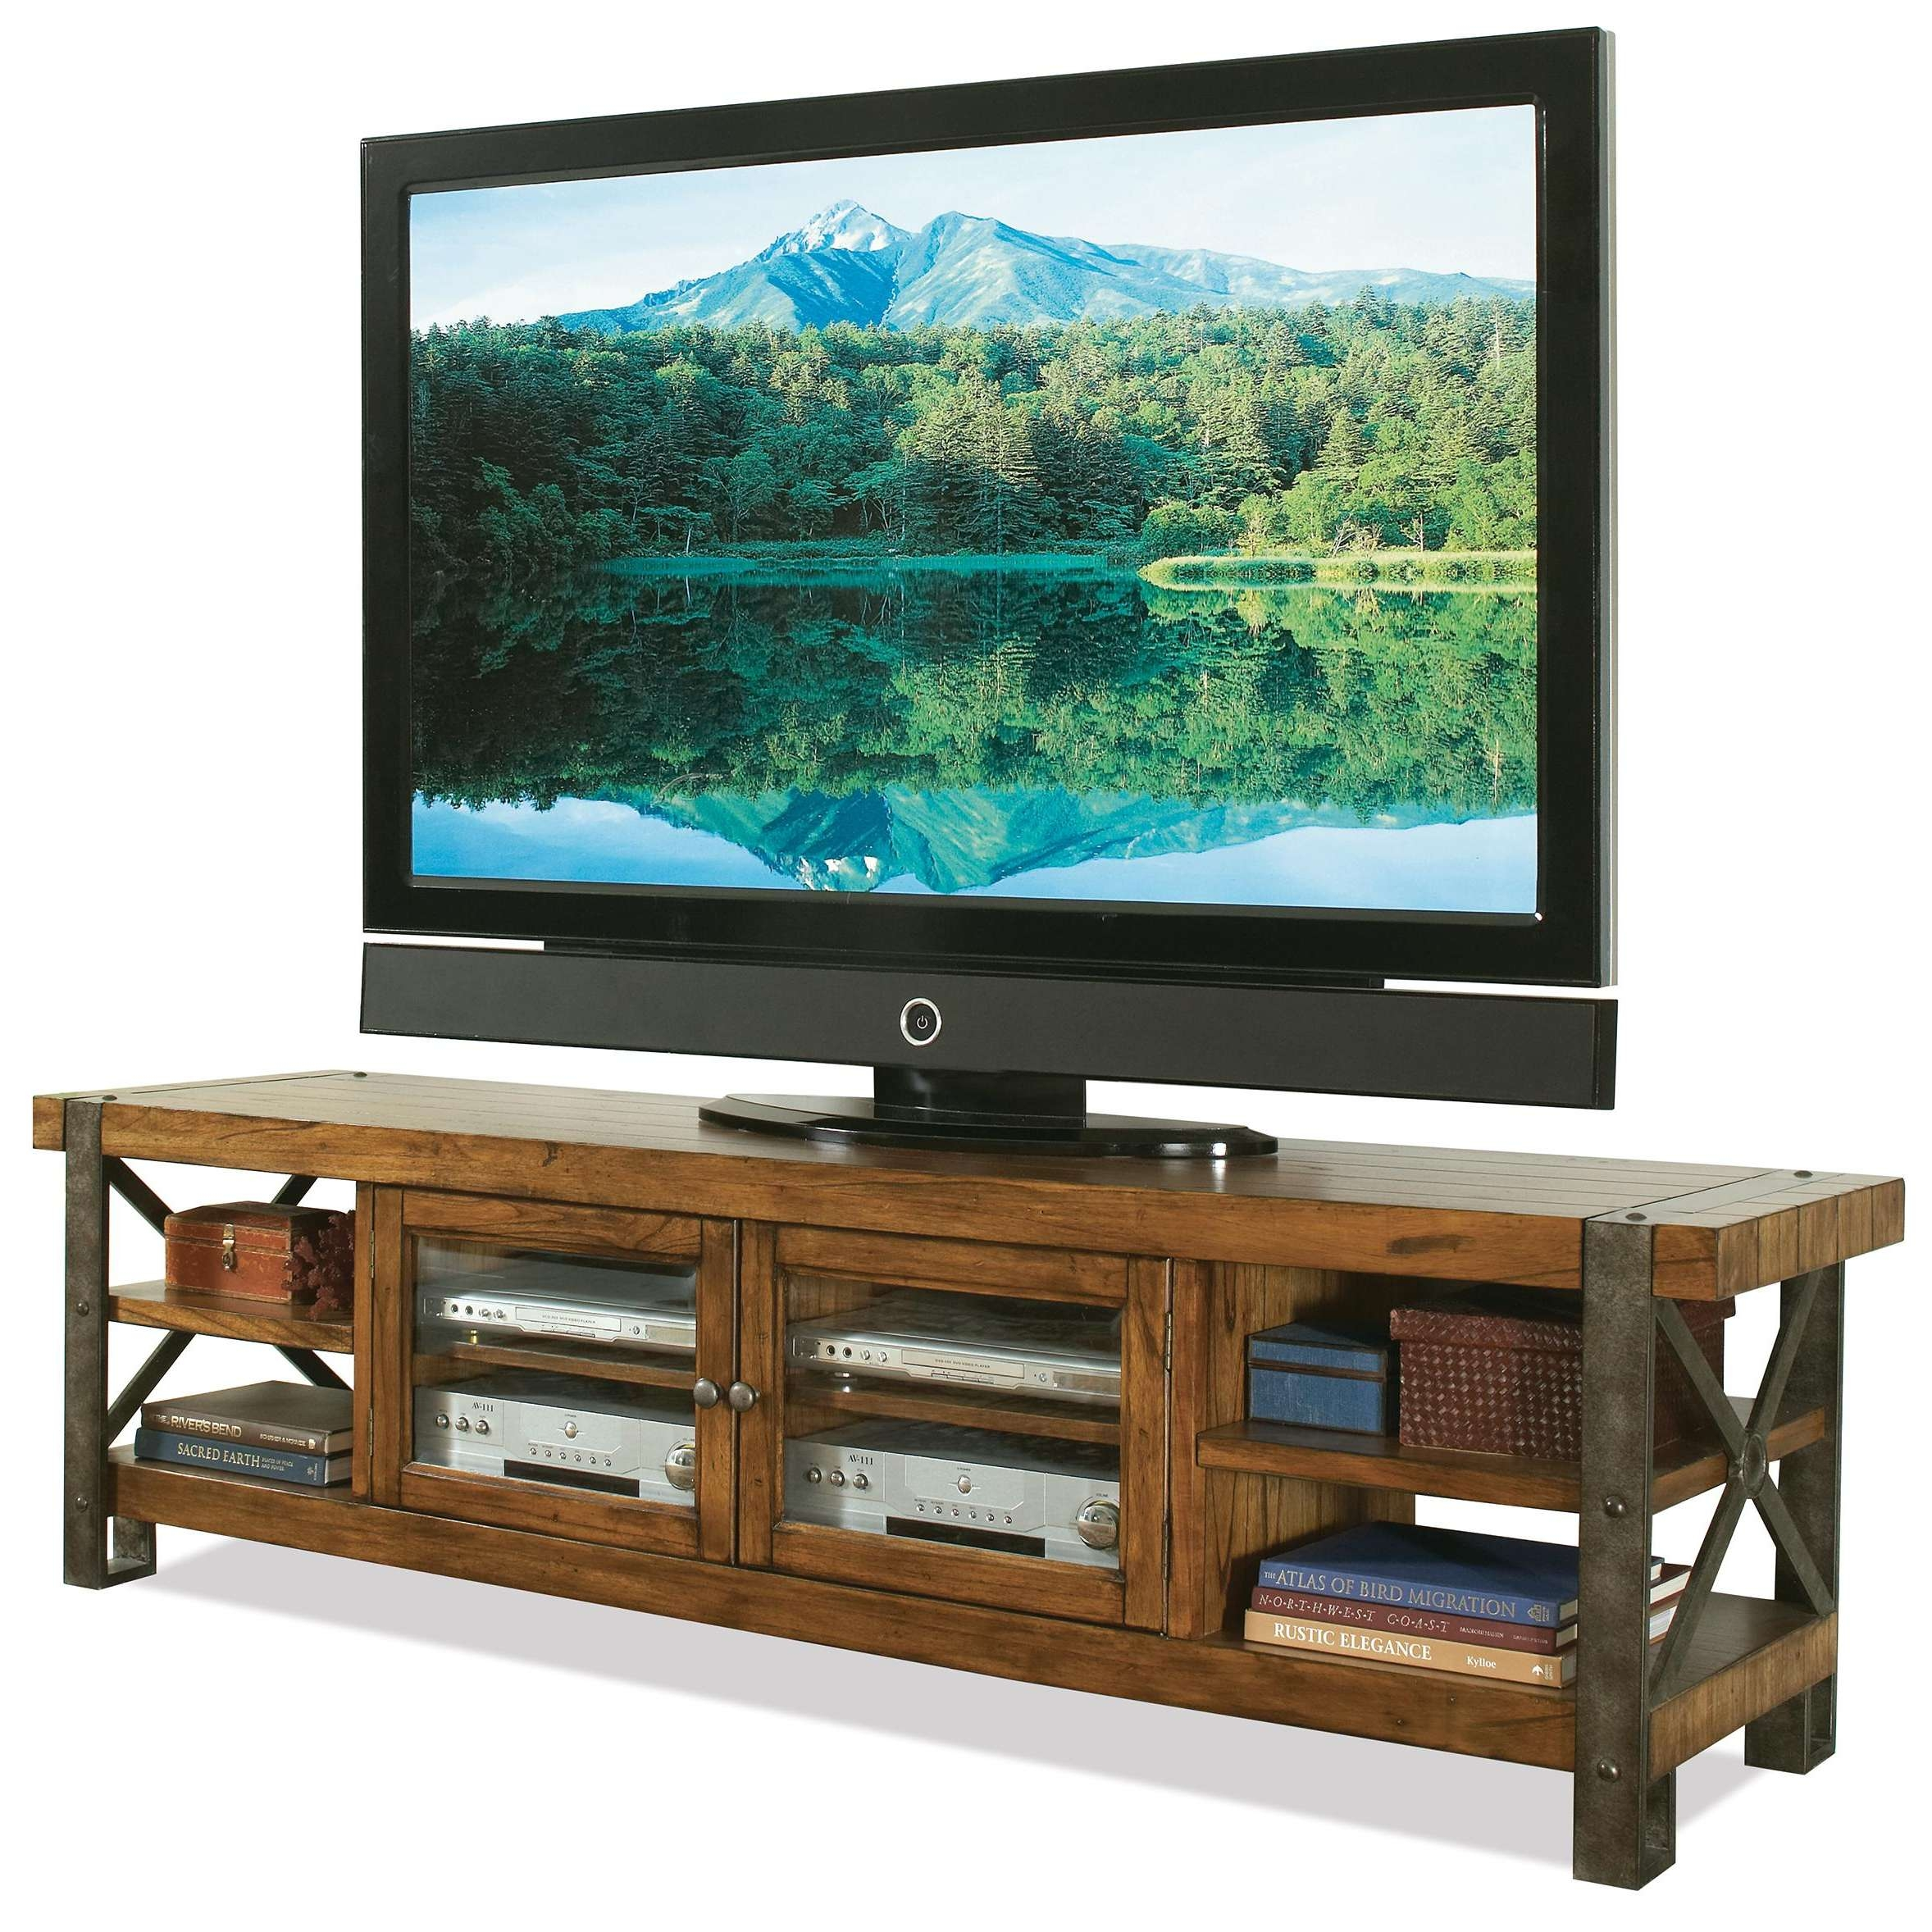 Rustic Tv Stand Console Table With Bookshelf And Storage With Throughout Rustic Pine Tv Cabinets (View 13 of 20)